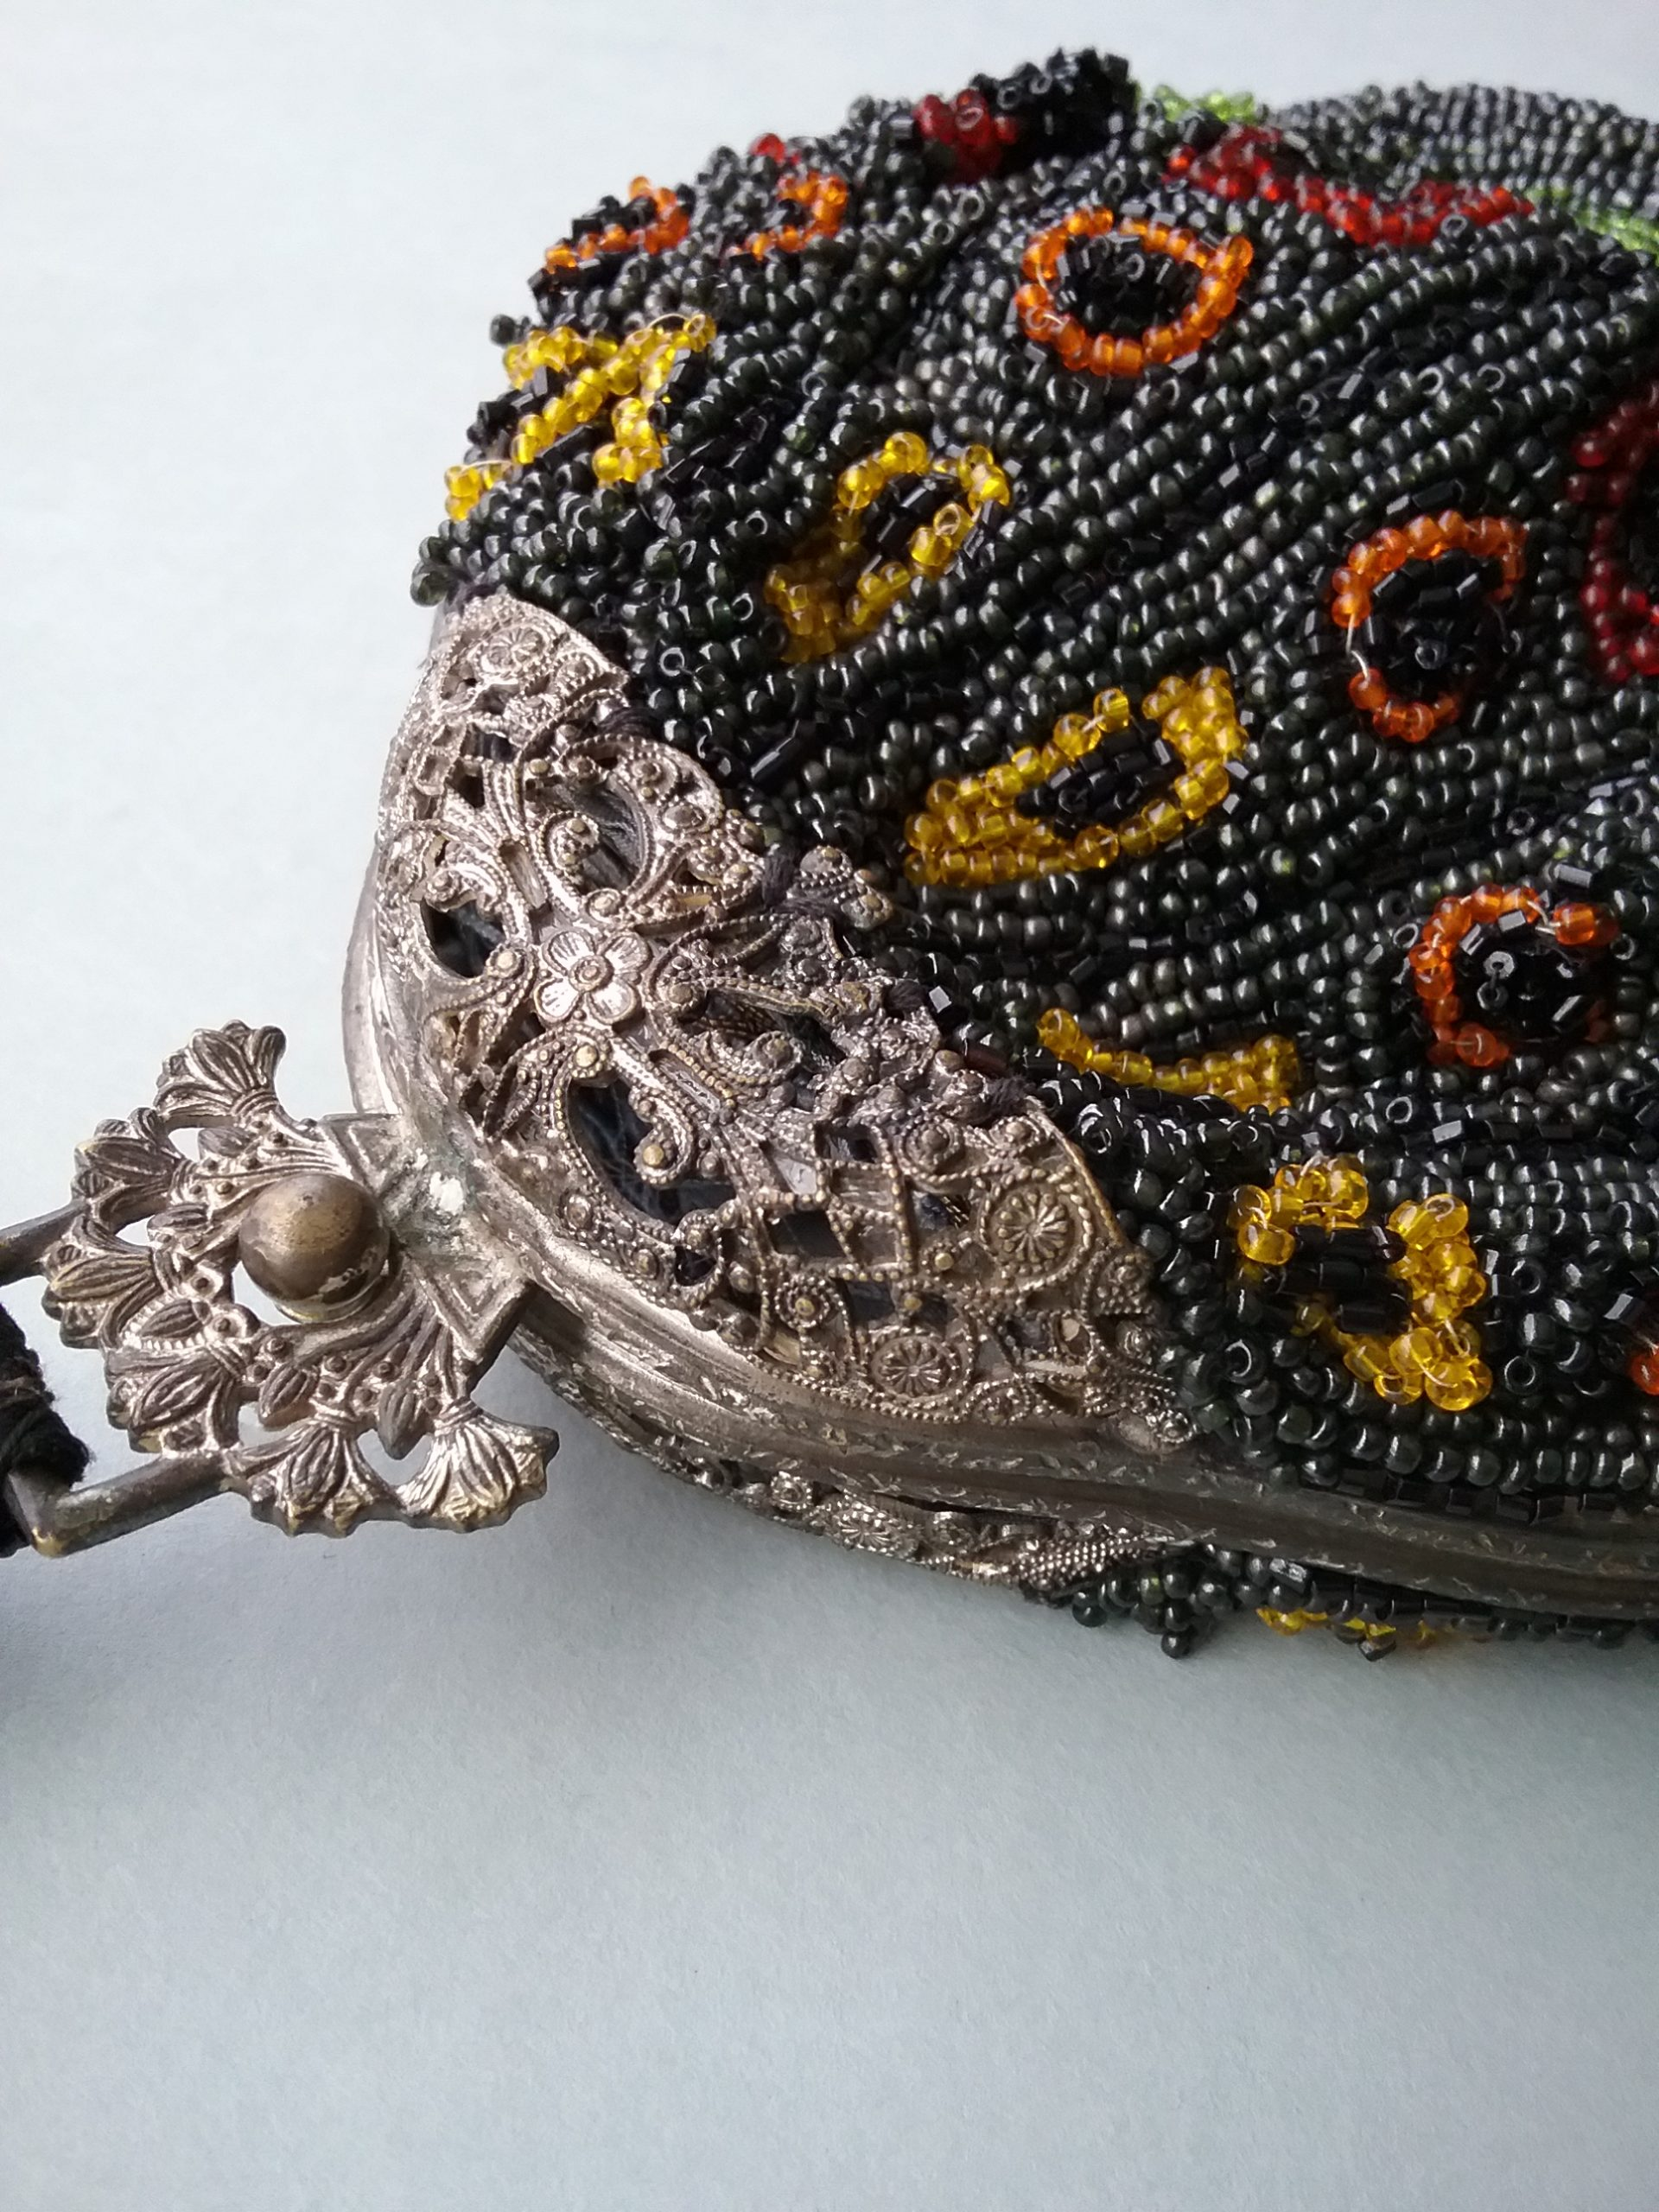 Closeup of evening handbag's metal clasp. MCHS collections, no accession number.